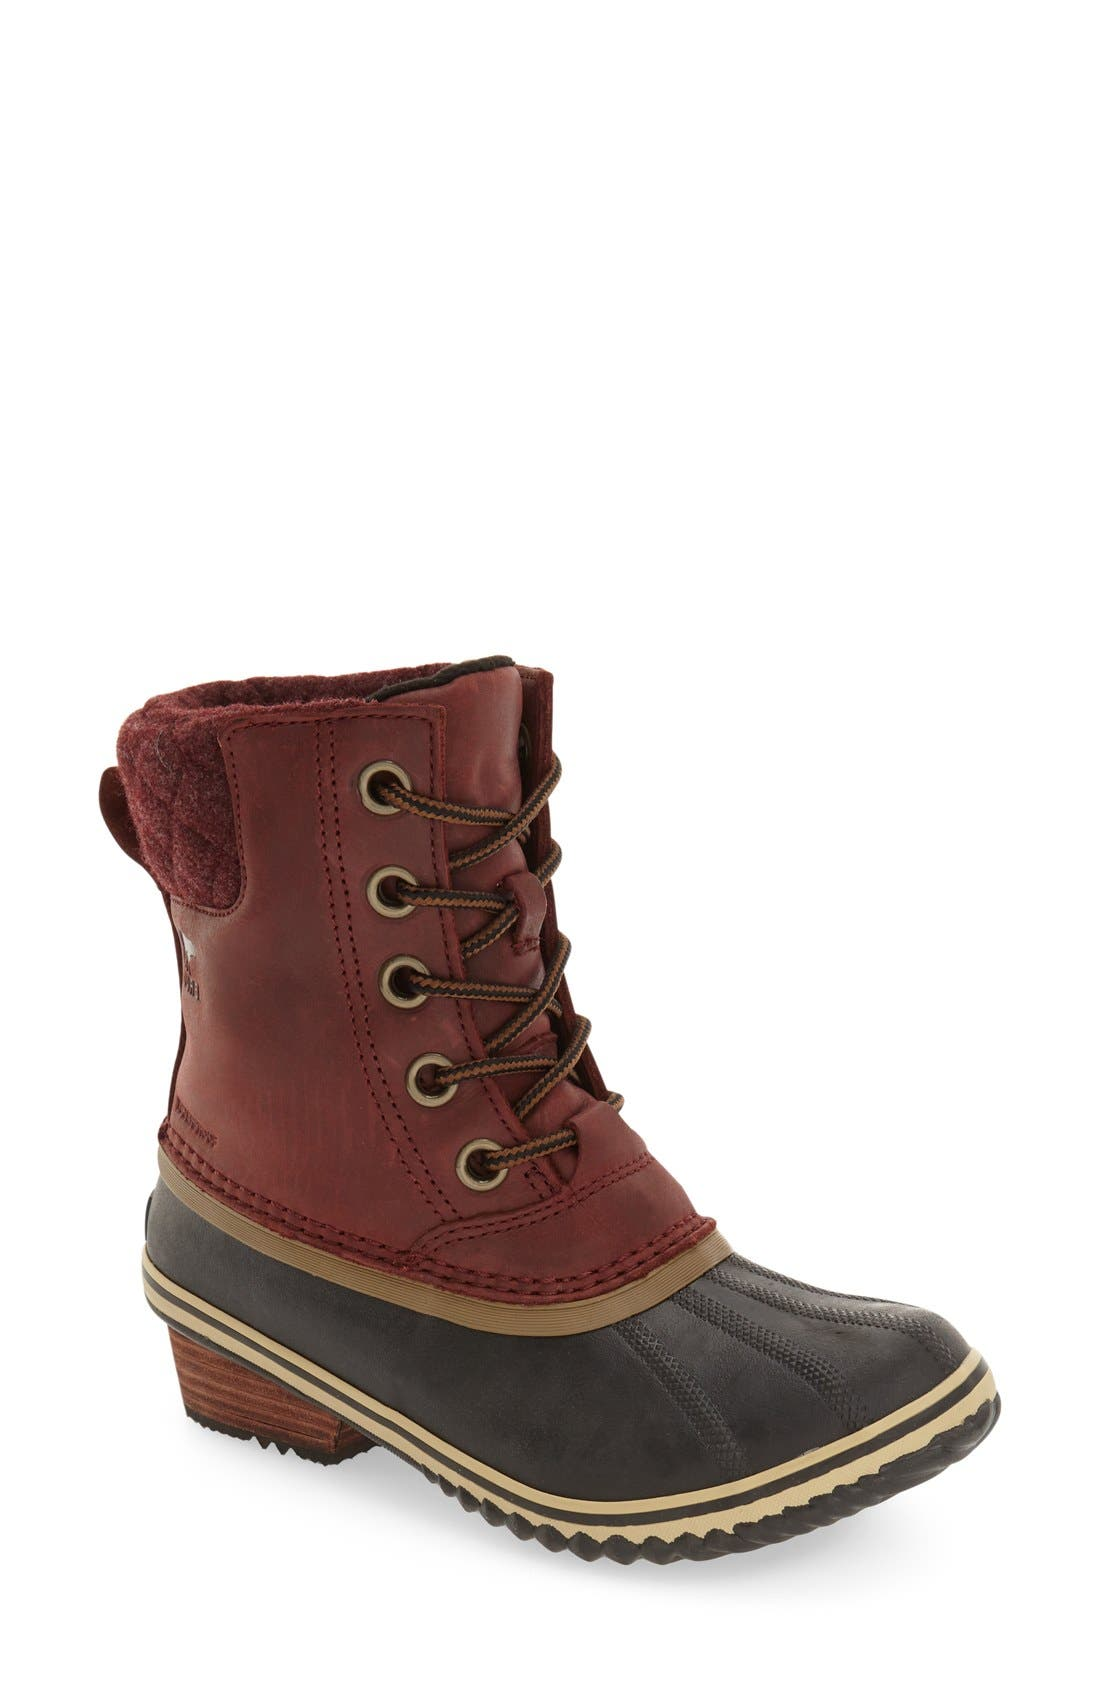 SOREL Slimpack II Waterproof Boot